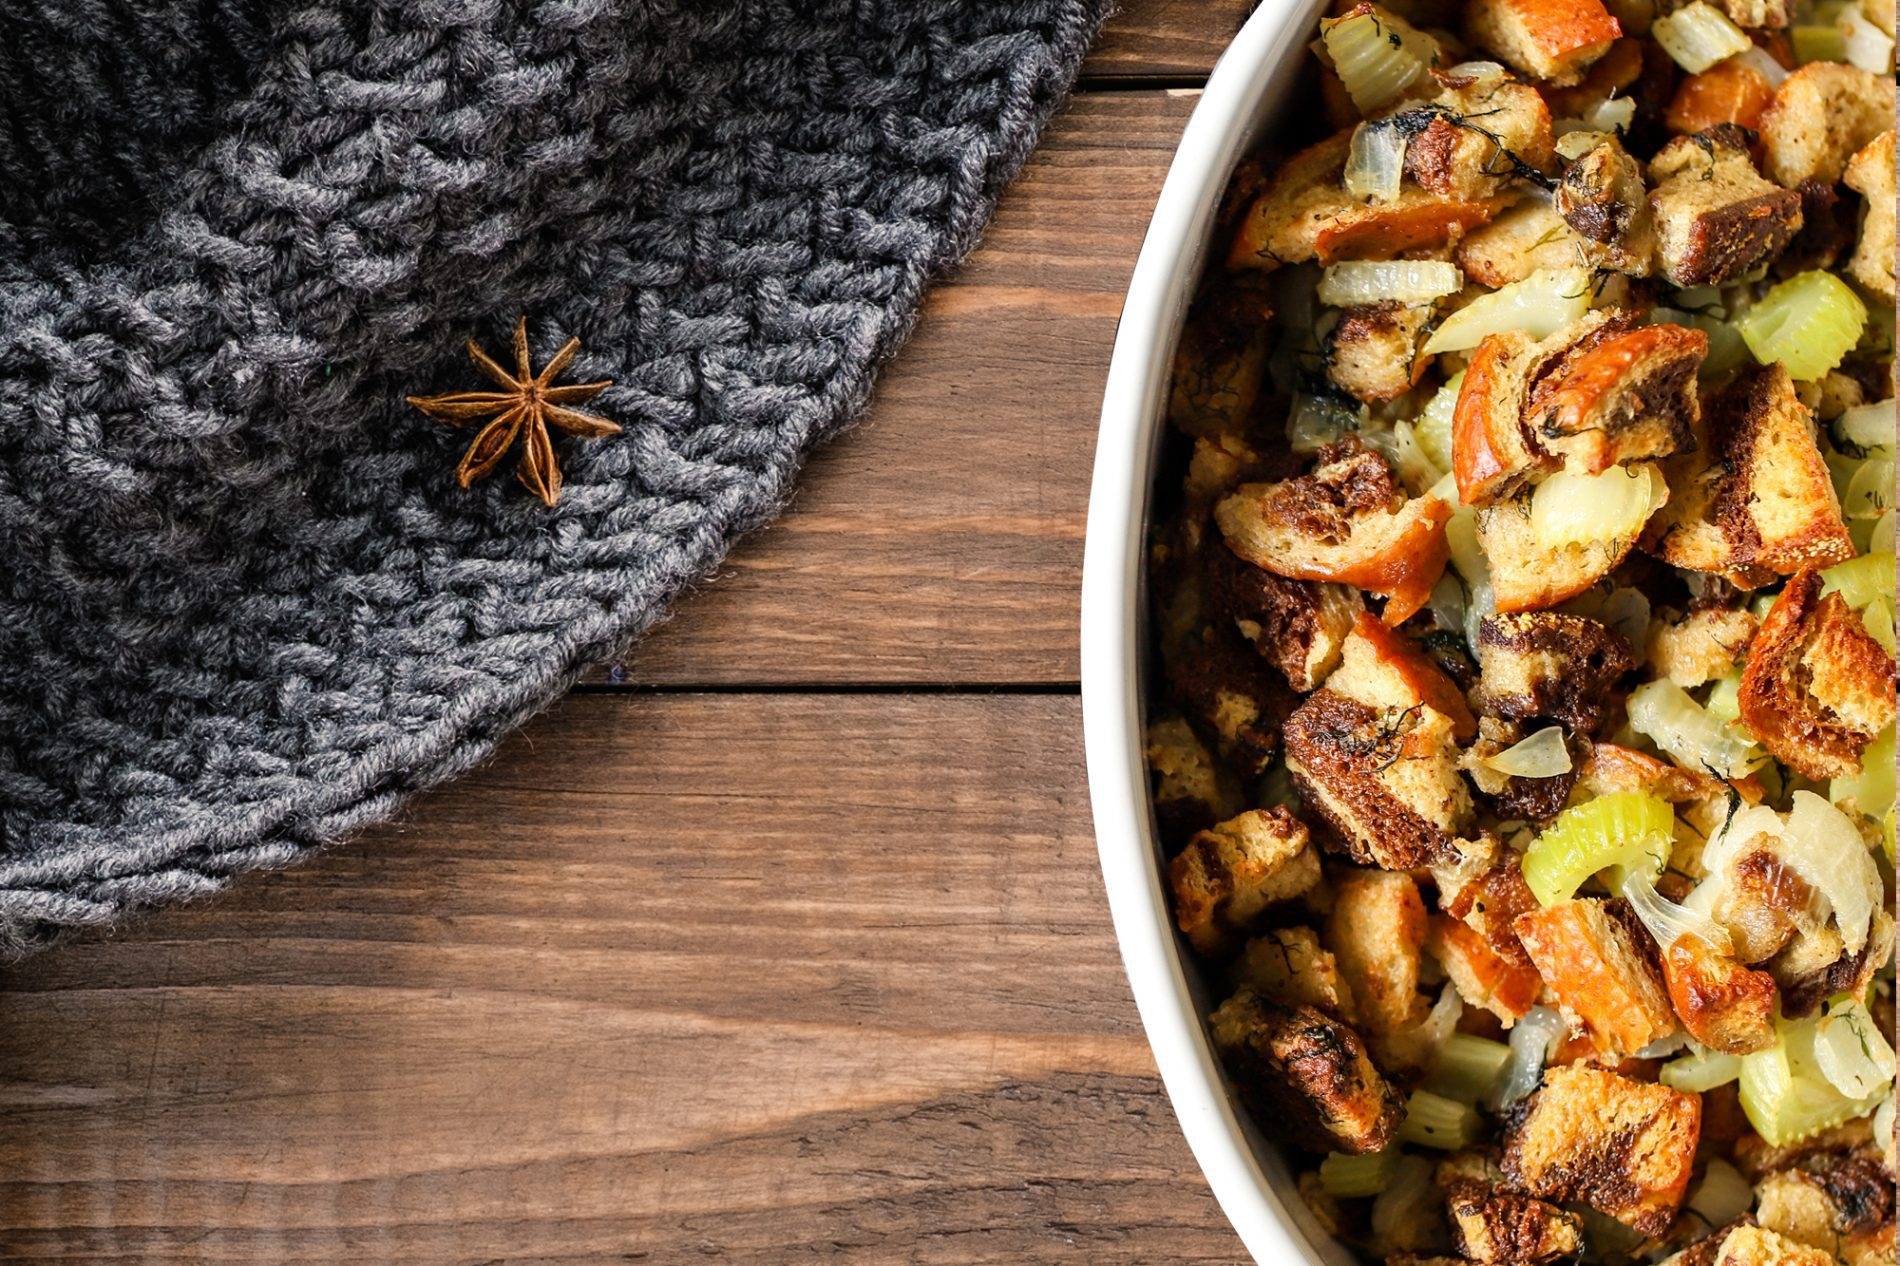 thanksgiving stuffing on a wooden table with a gray blanket